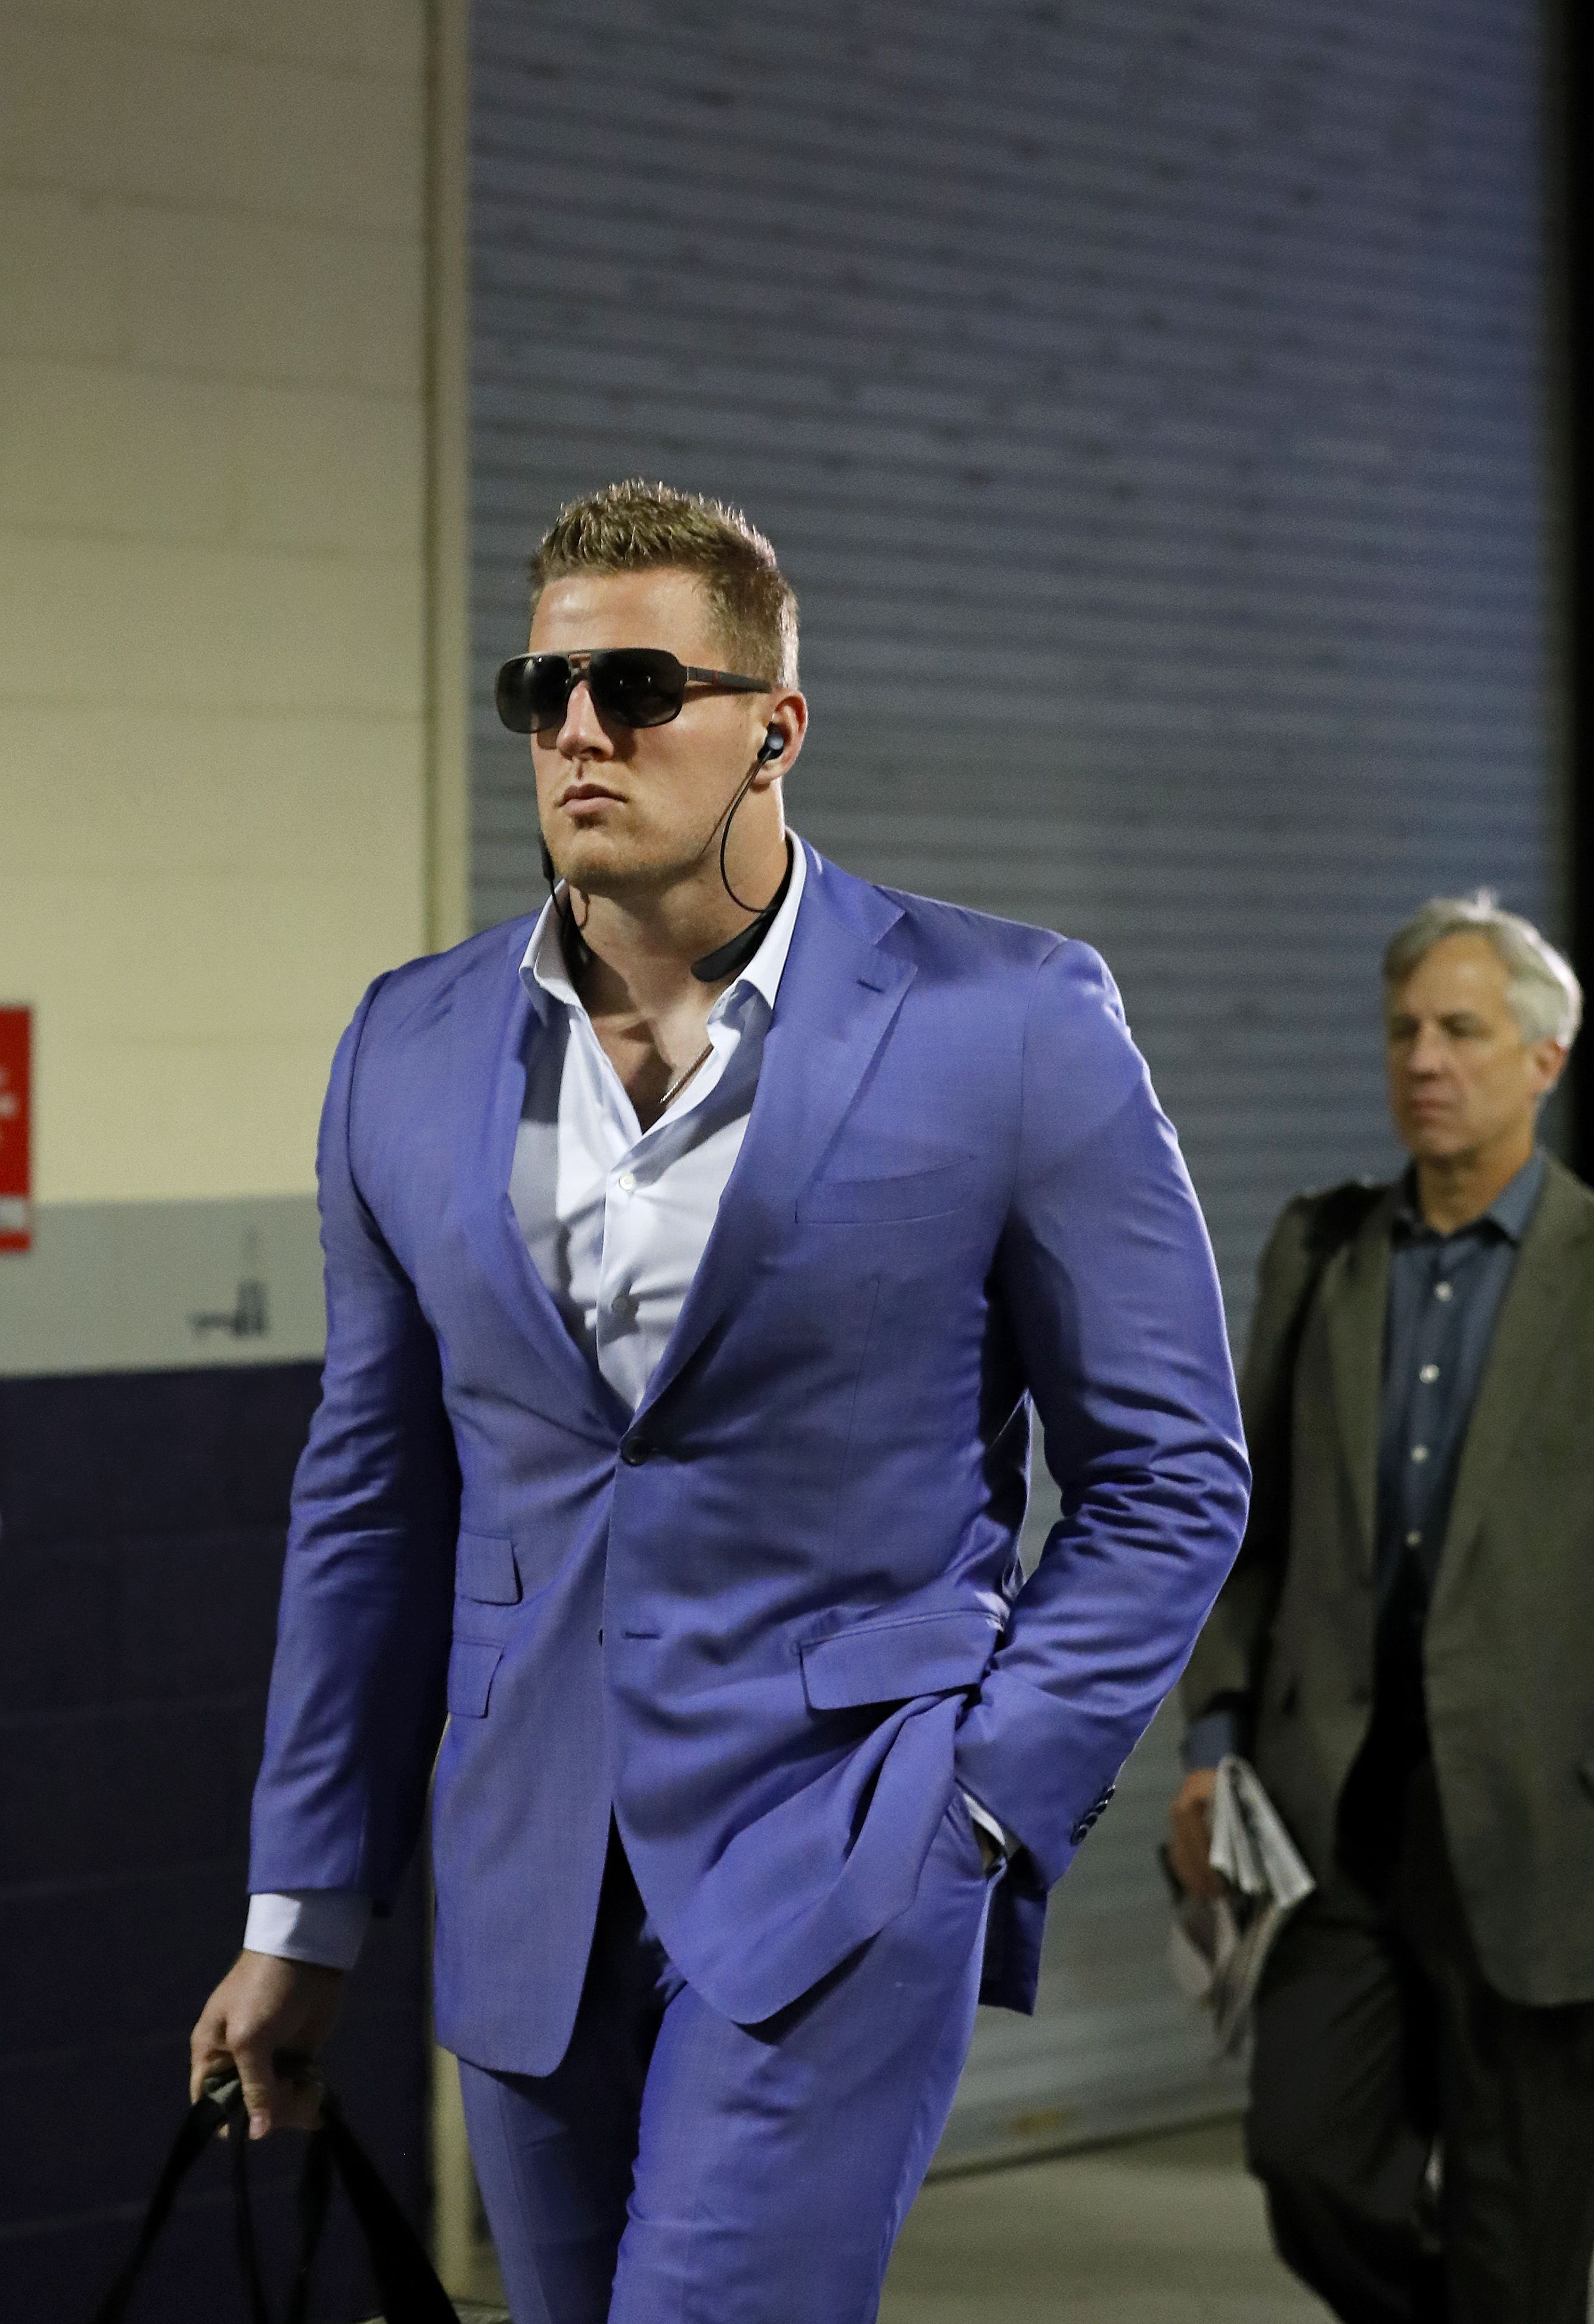 Houston Texans De Jj Watt Arrived To His Week 3 Matchup Against The